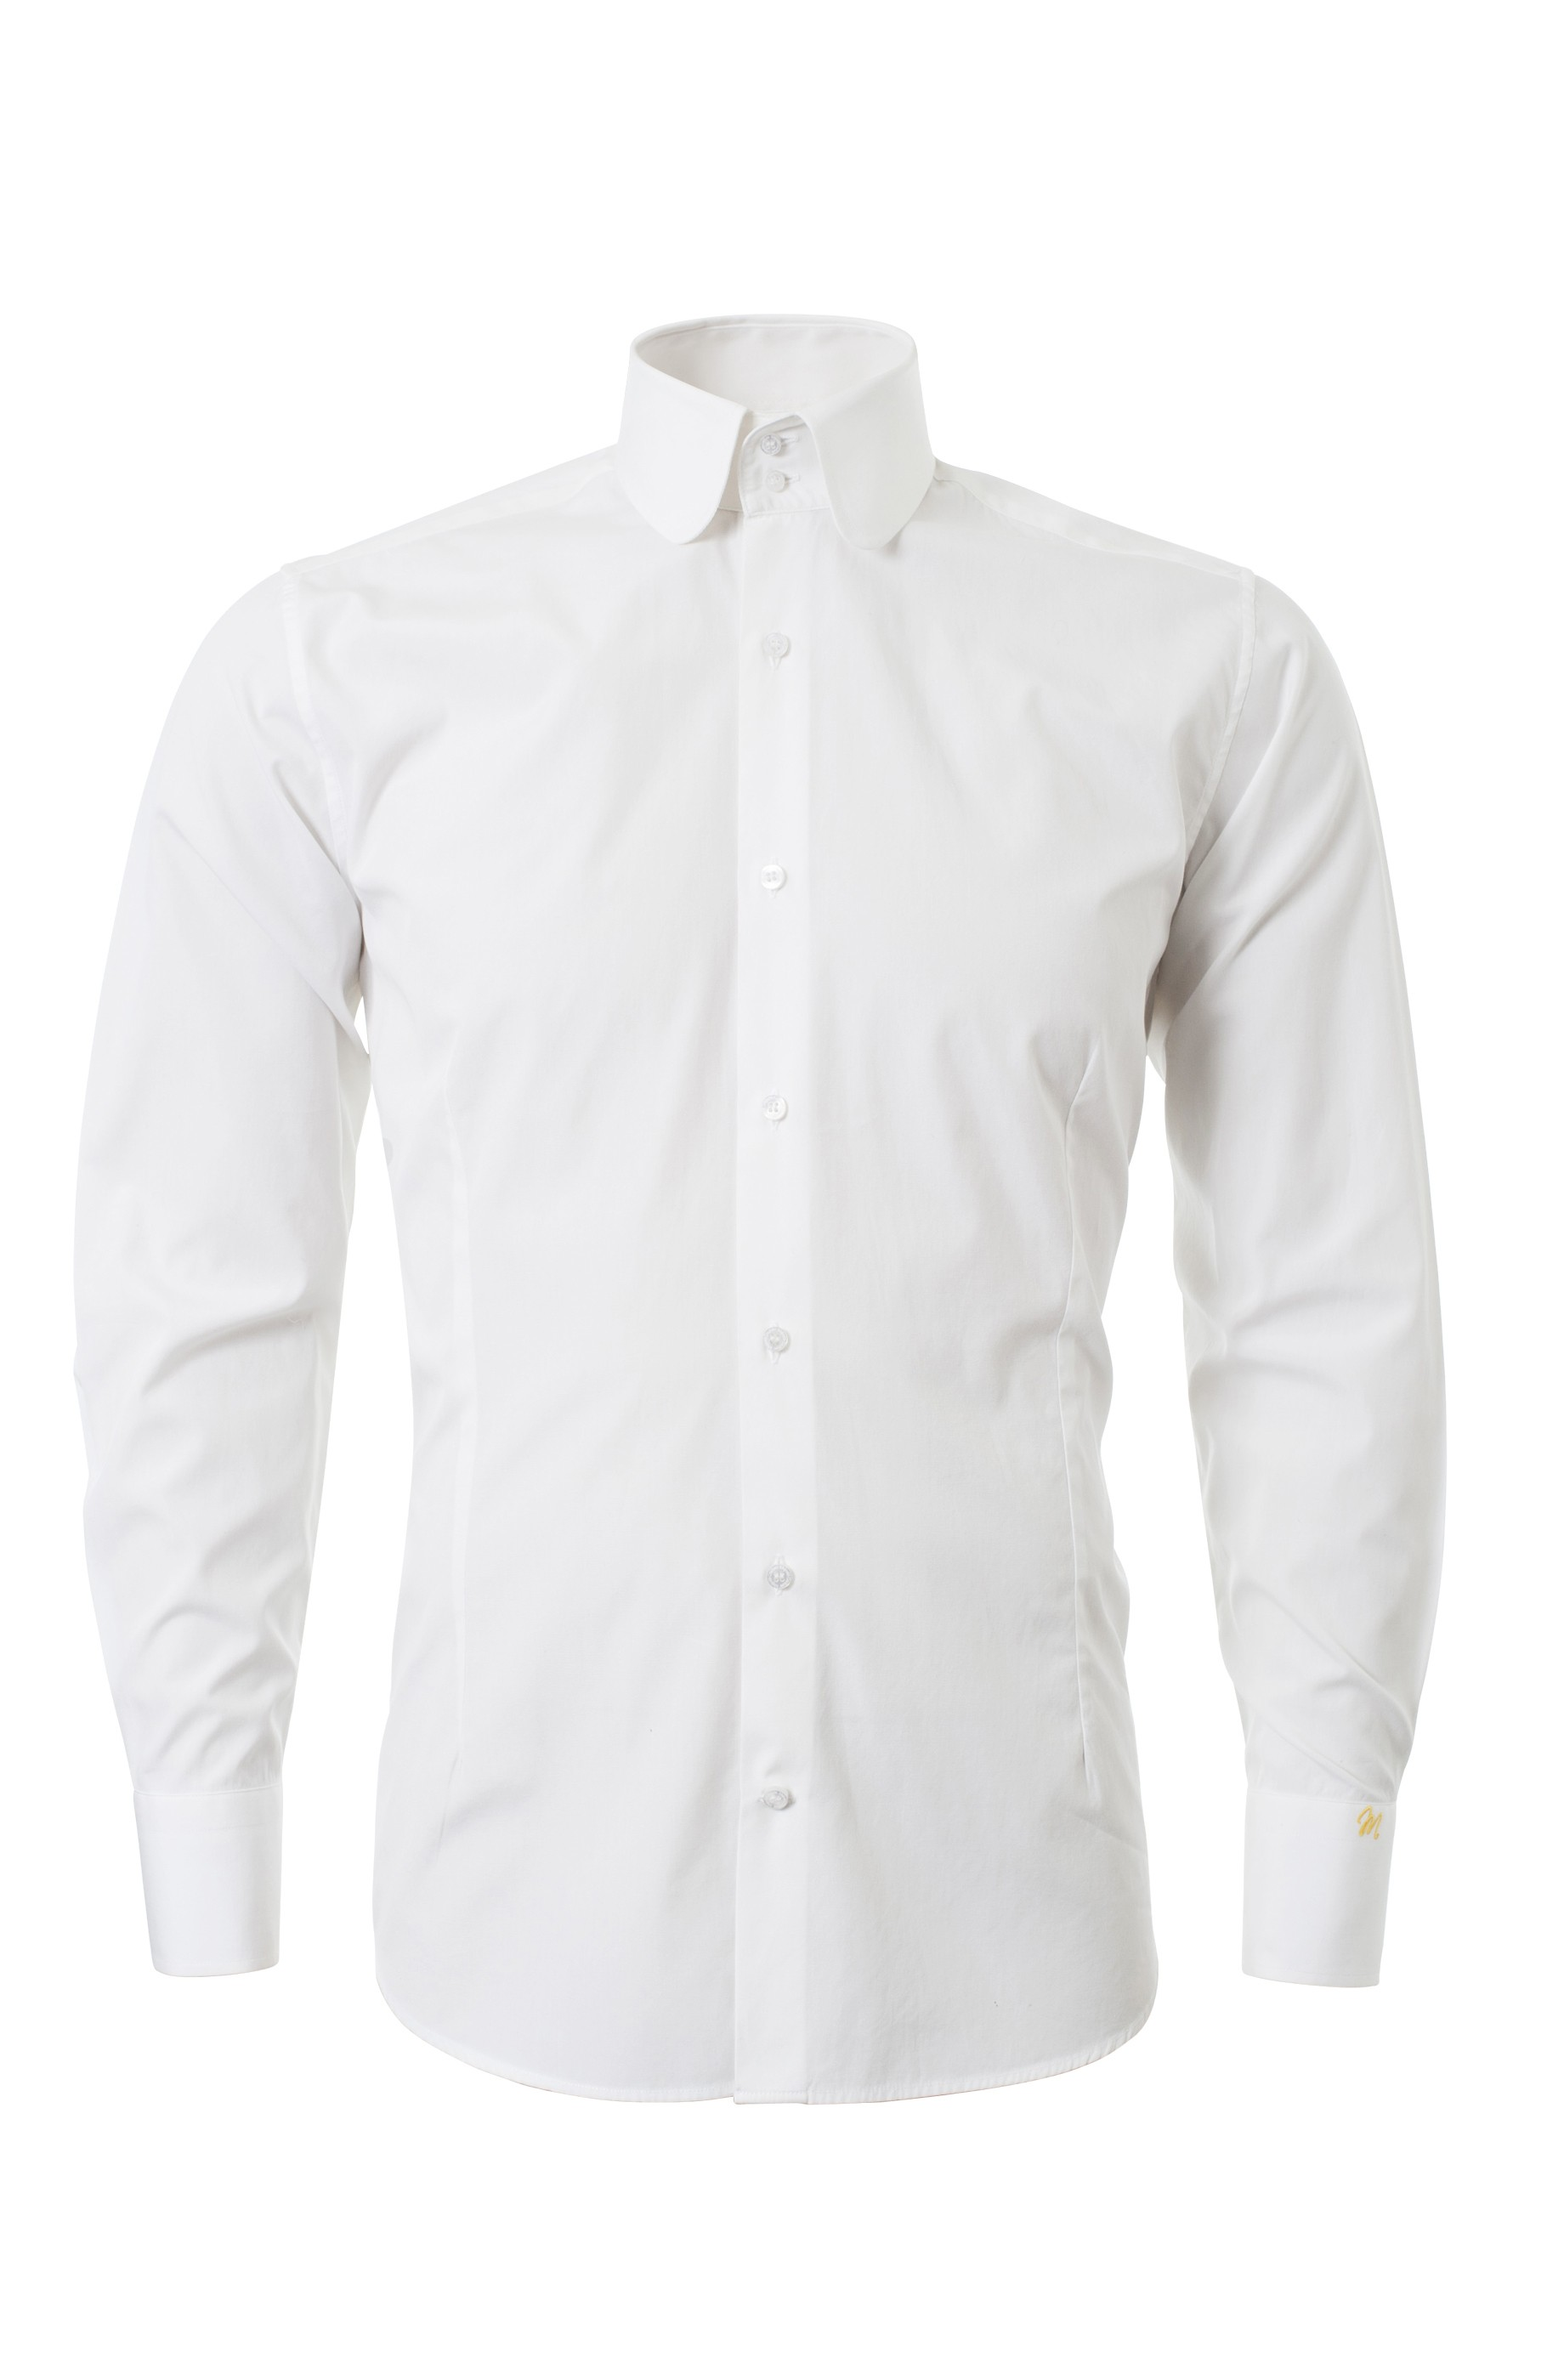 Majesté Couture Paris: WHITE EXCELLENCE SHIRT | Clothing,Clothing > Shirts -  Hiphunters Shop